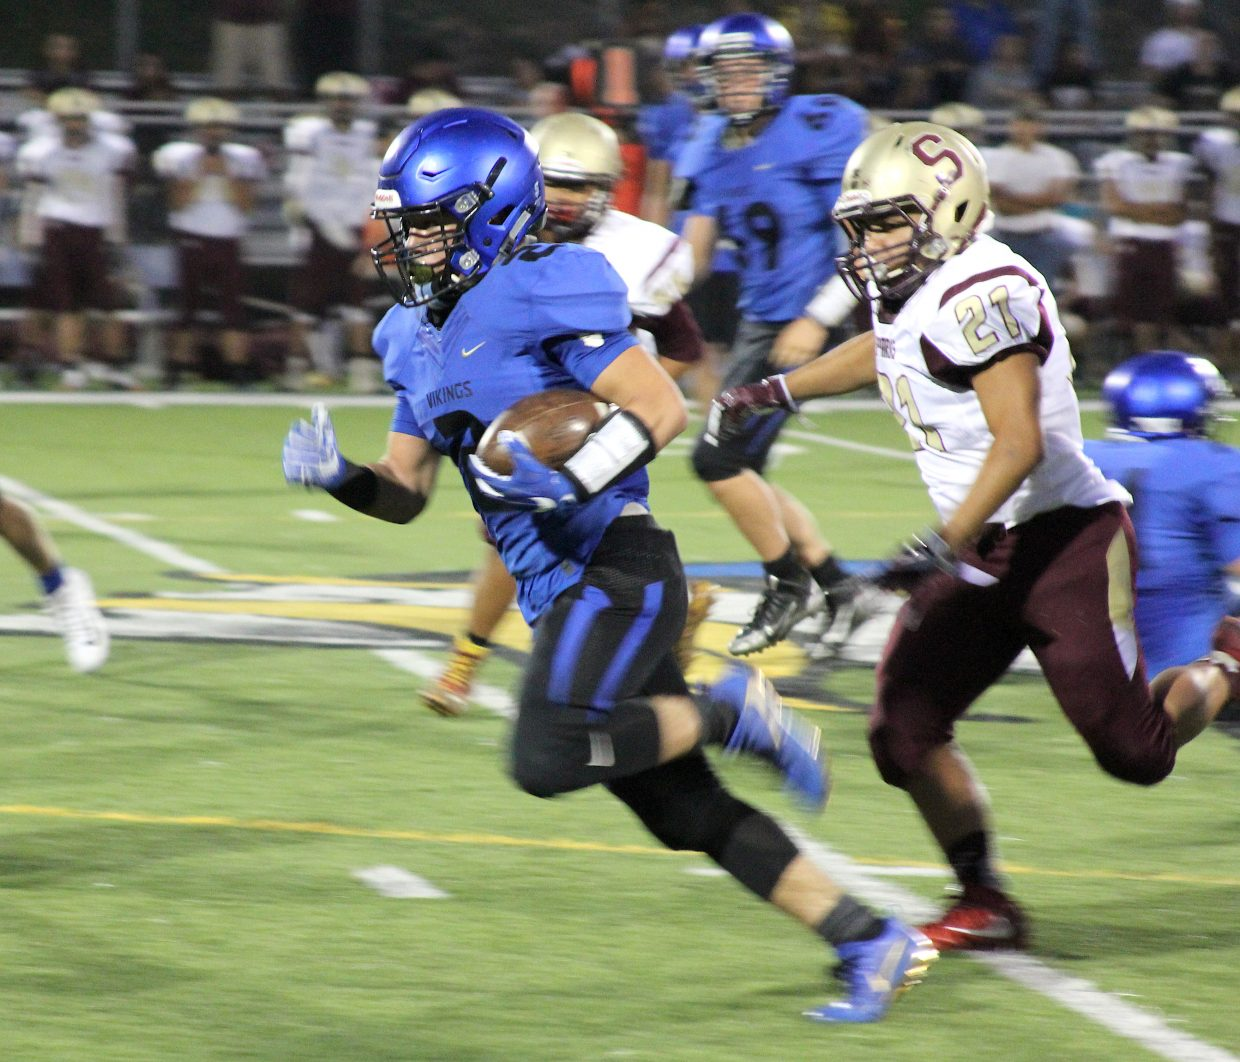 South Tahoe's Jakob Costley runs for a big gain Friday night against Sparks. Costley scored three times and rushed for over 10 yards per carry.